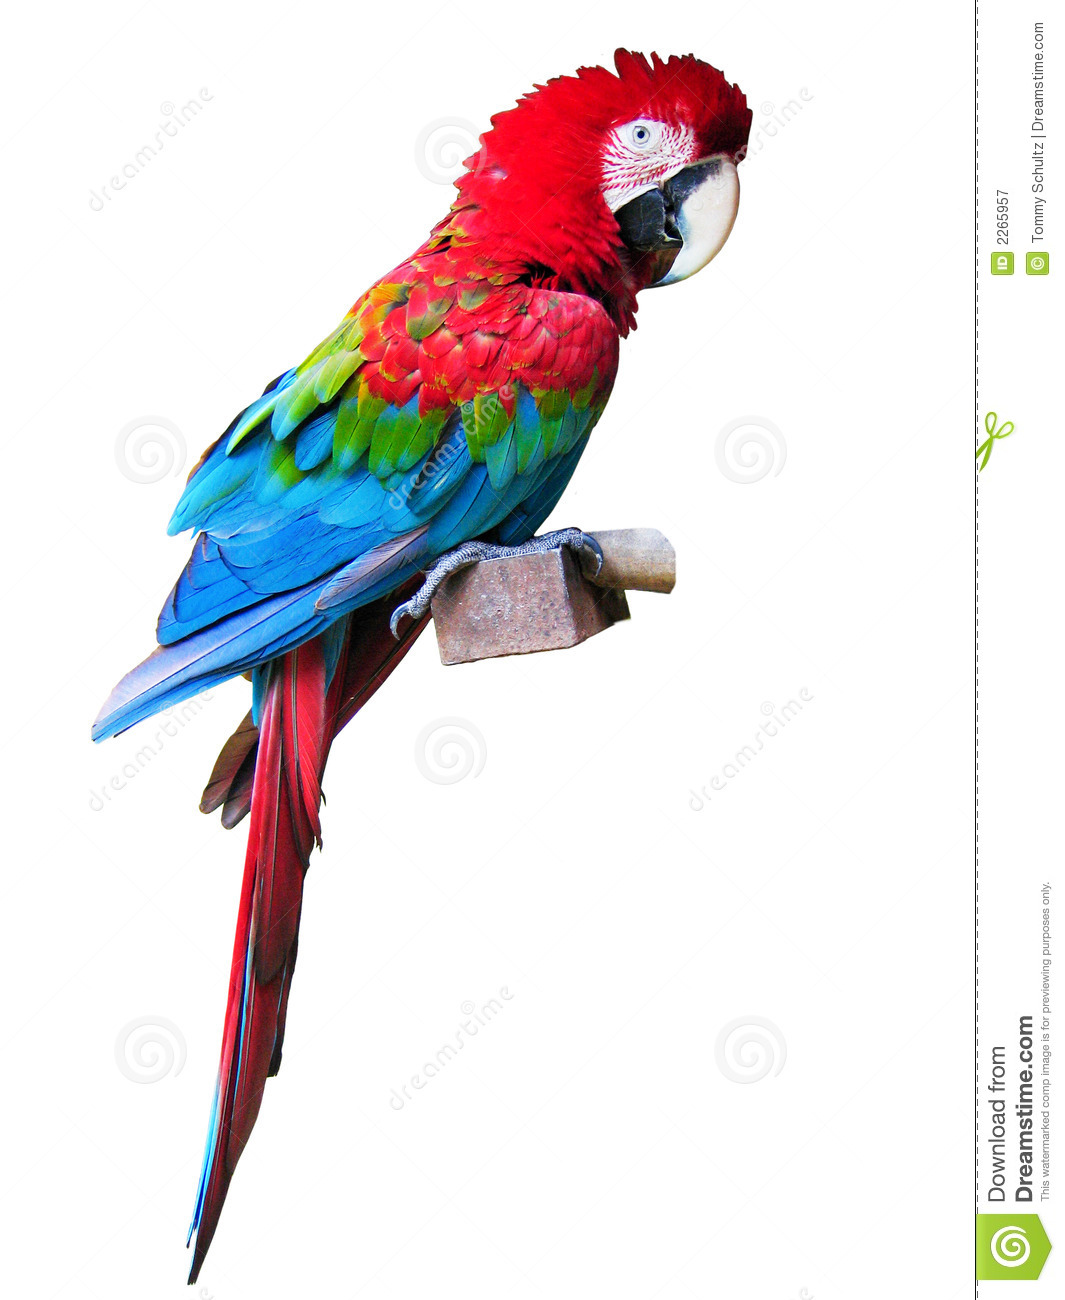 Macaw parrot red - photo#23